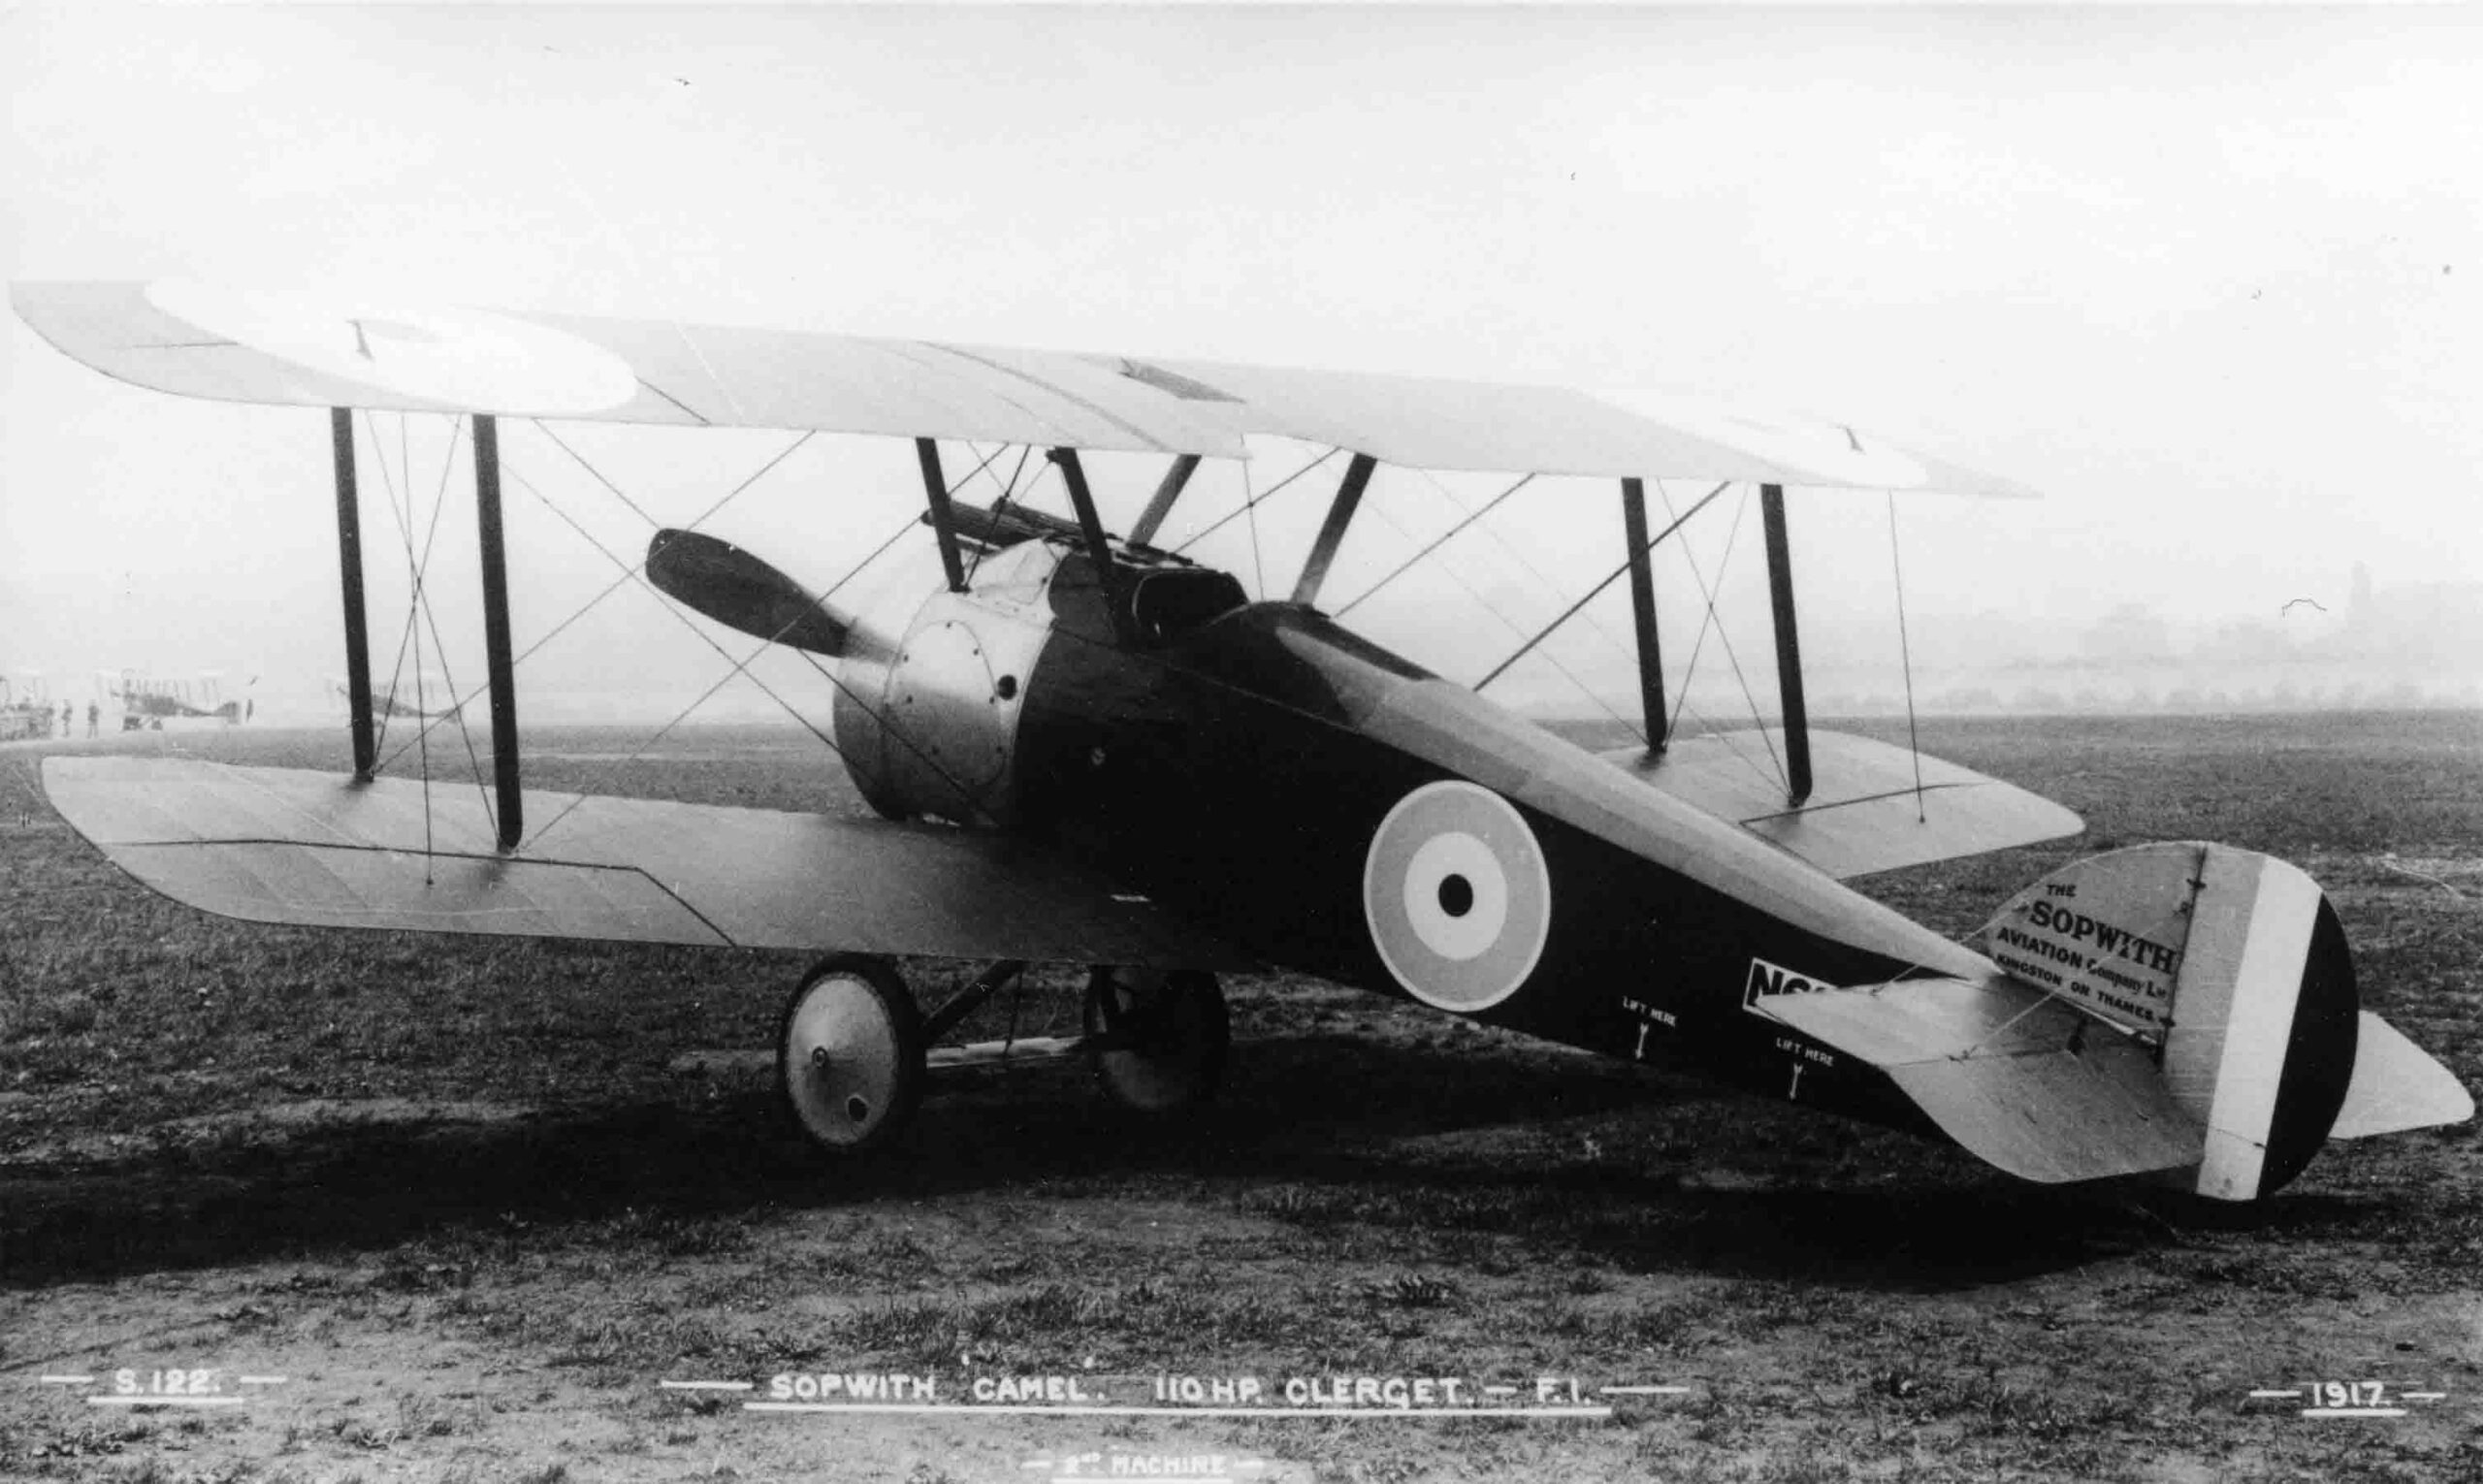 X003-2602-14910: This is almost certainly serial N6332 as seen above, Brooklands, 1917.  Two B.E.2cs can be seen in the background.